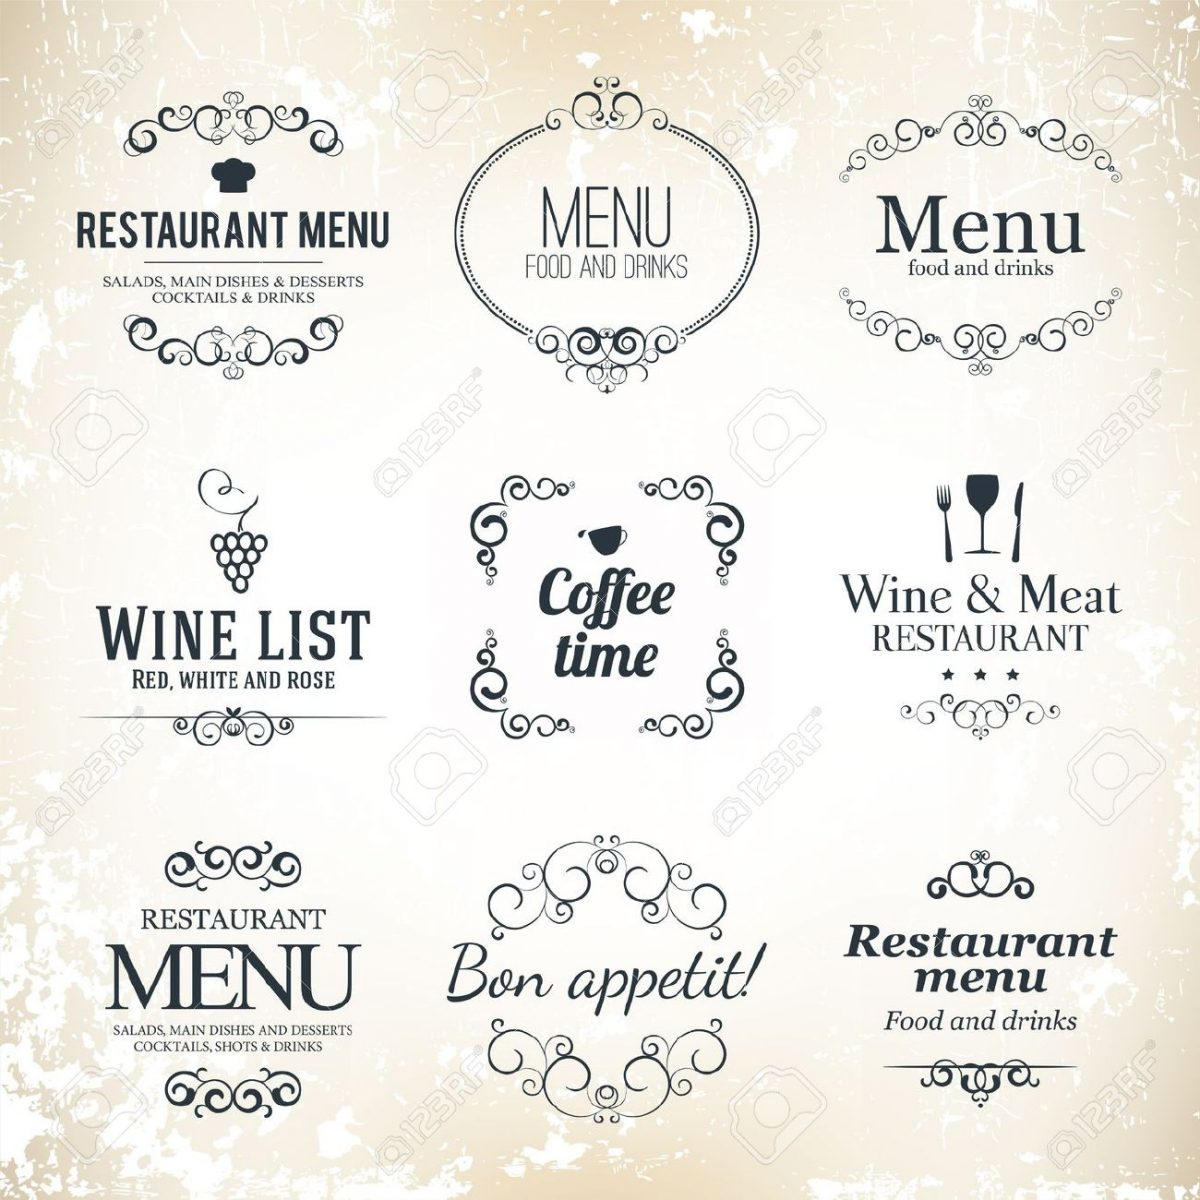 4 Customer Friendly Restaurant Menu Design Tips Designhill